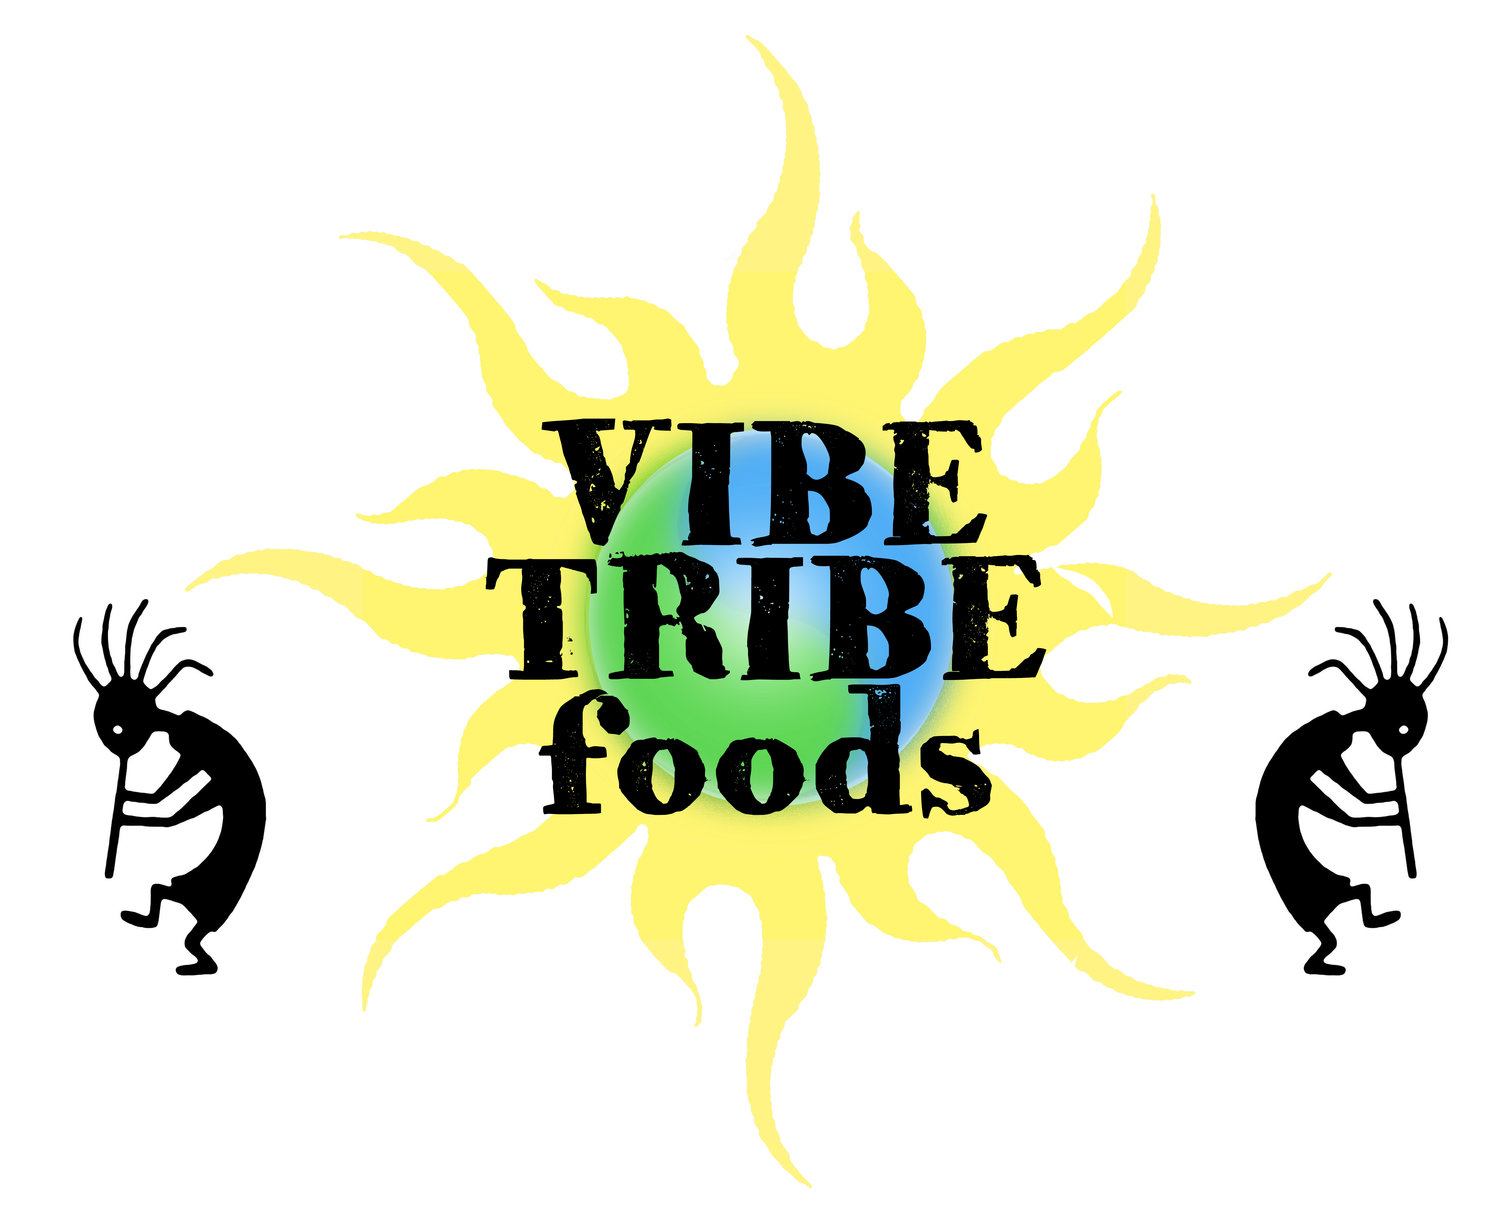 VIBE TRIBE foods